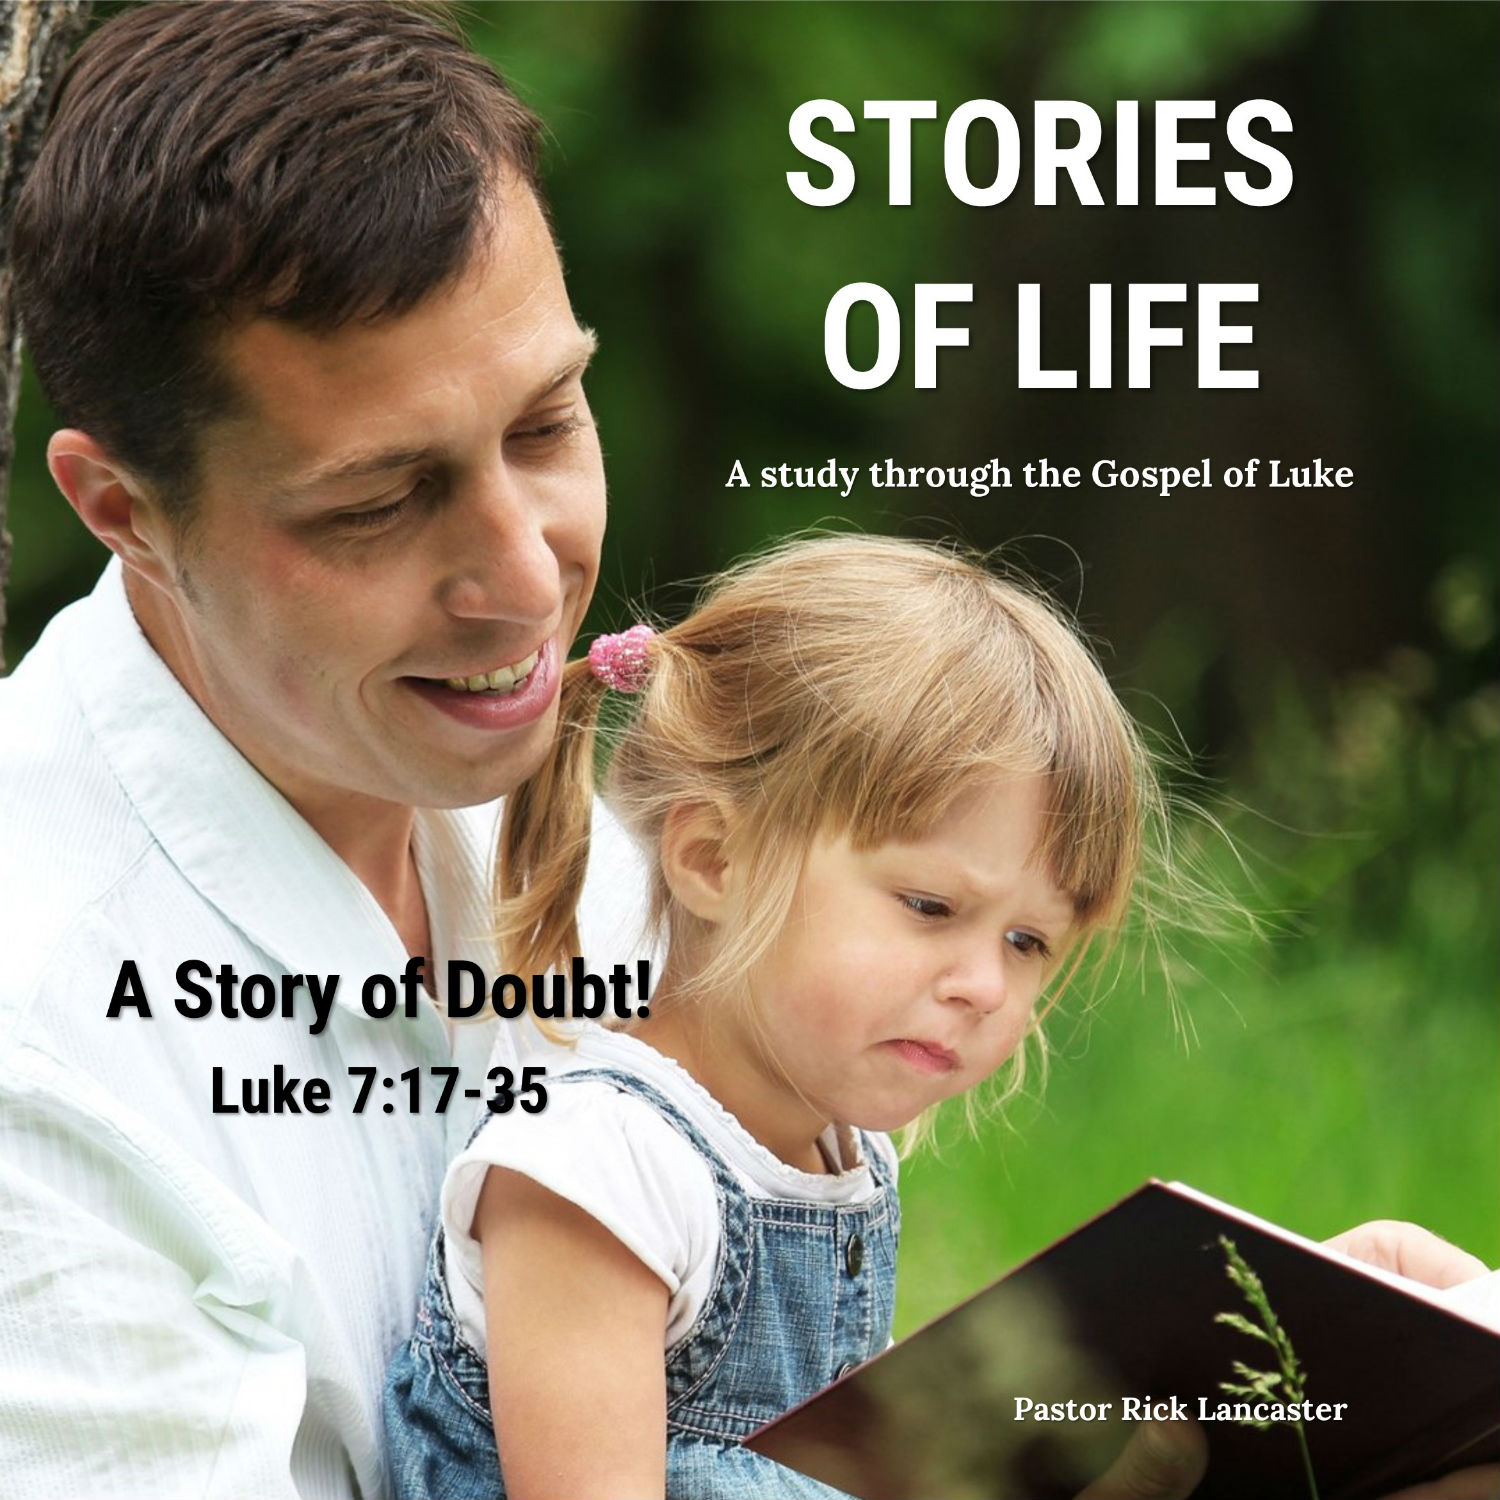 A Story of Doubt! – Luke 7:17-35